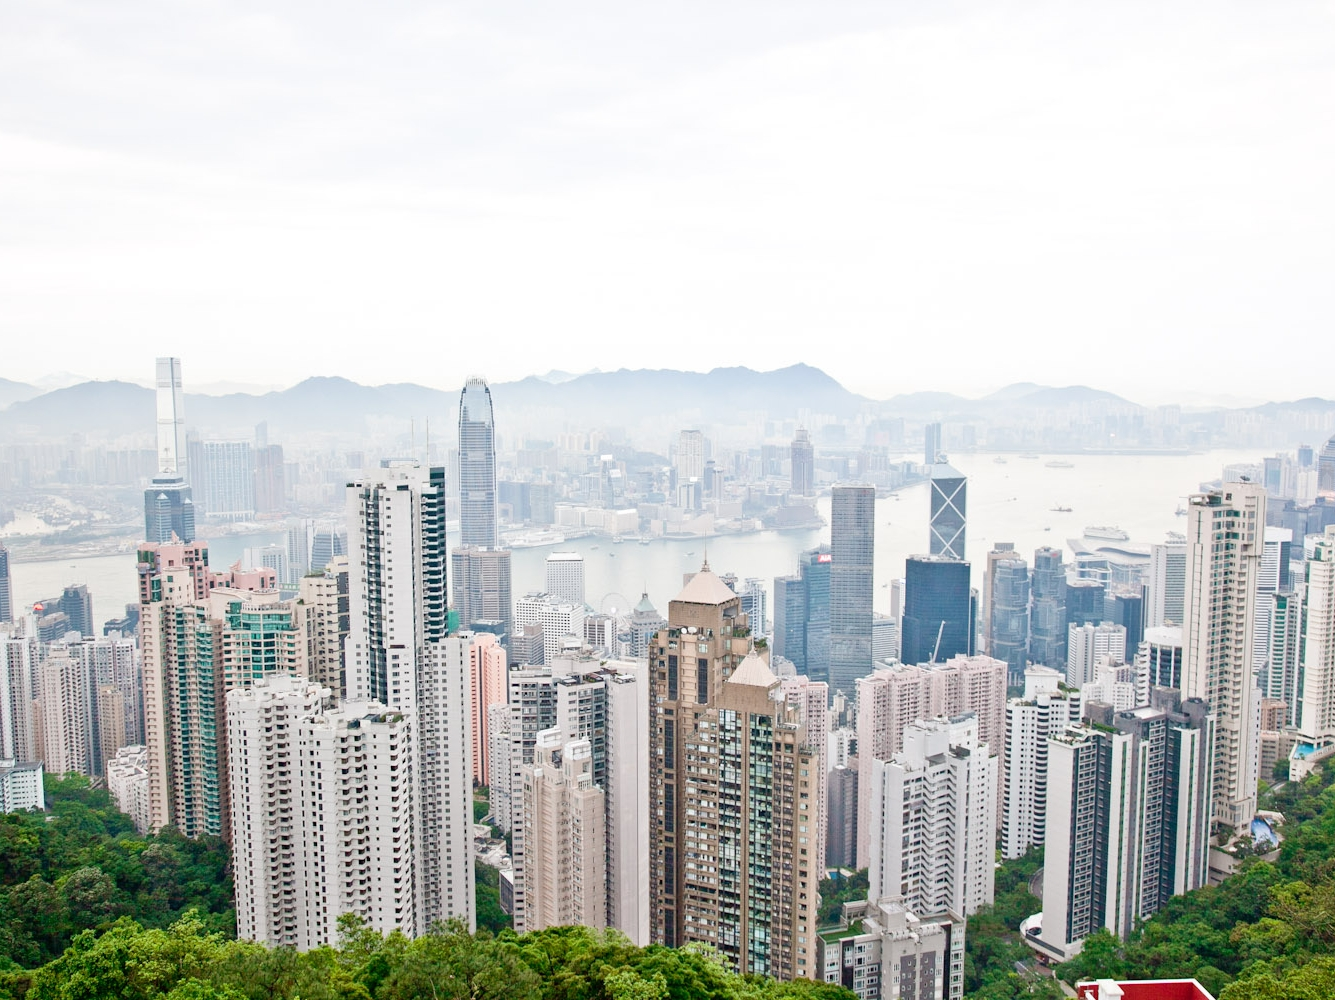 Hong Kong - Known for it's idyllic harbor and towering skyline, nestled against the backdrop of the evergreen Victoria Peak, Hong Kong is easily one of the most bustling and vibrant cities in the world.